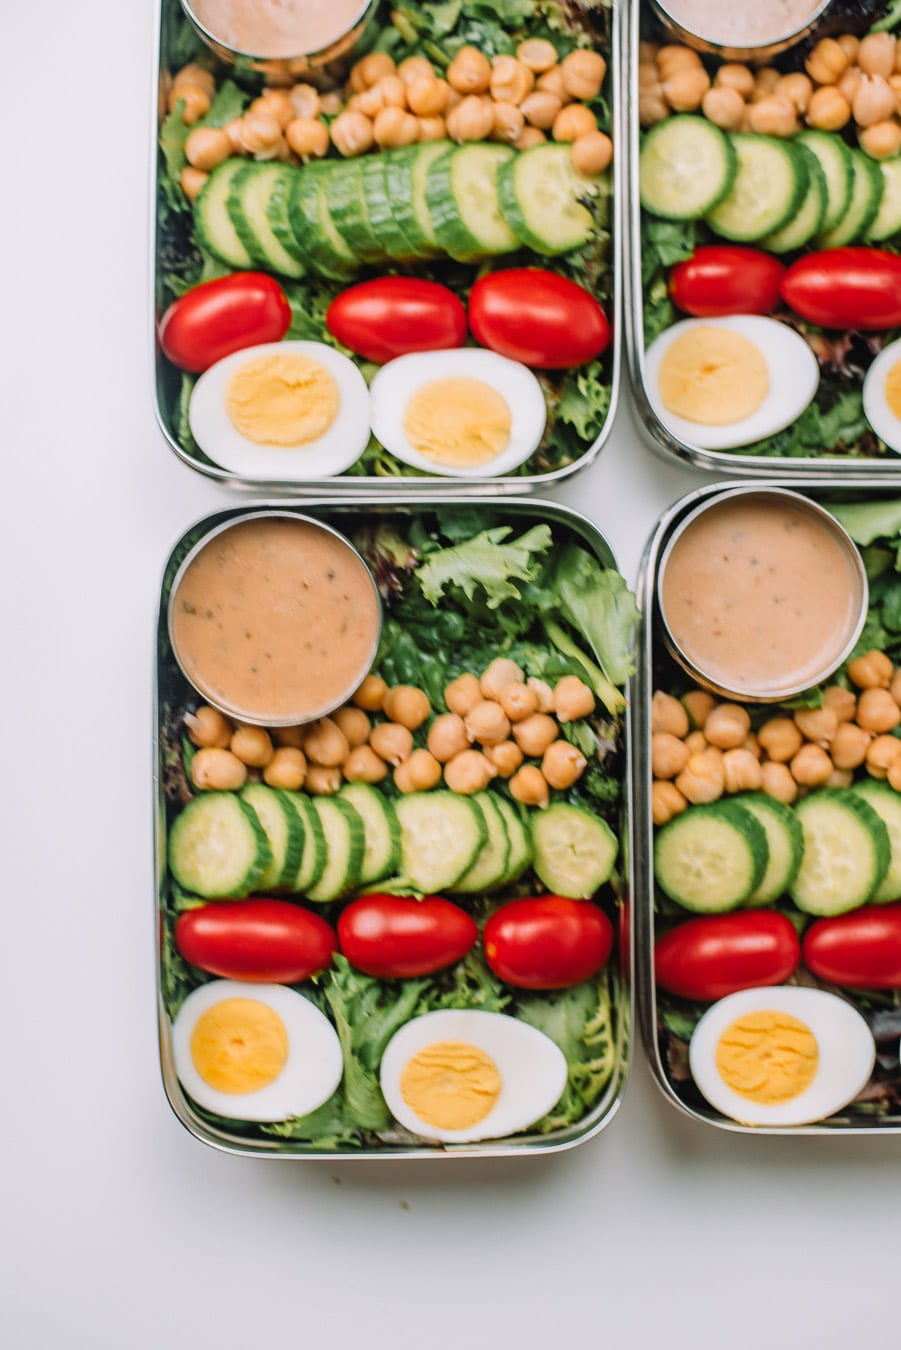 4 Bento boxes filled with mixed greens, boiled egg, grape tomatoes, mini cucumbers, chickpeas, and Drew's Organics Tahini Goddess Dressing and Marinade